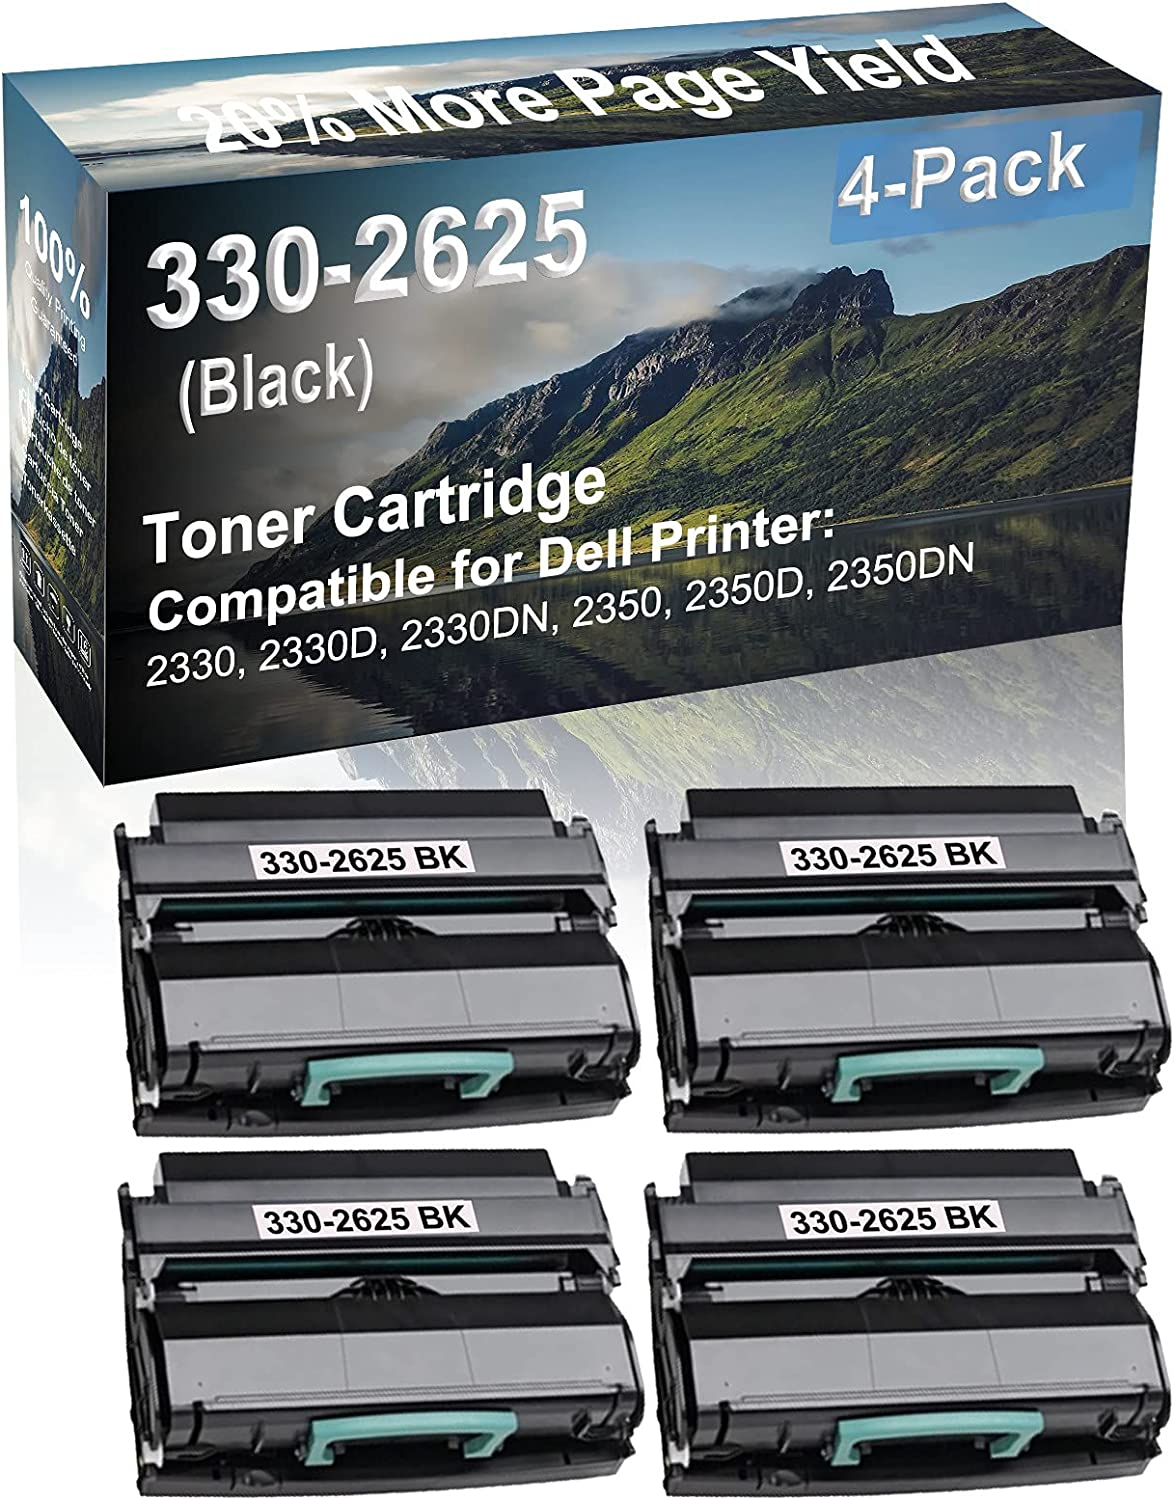 4-Pack Compatible High Yield 2350D, 2350DN Laser Printer Toner Cartridge Replacement for Dell 330-2625 Printer Cartridge (Black)